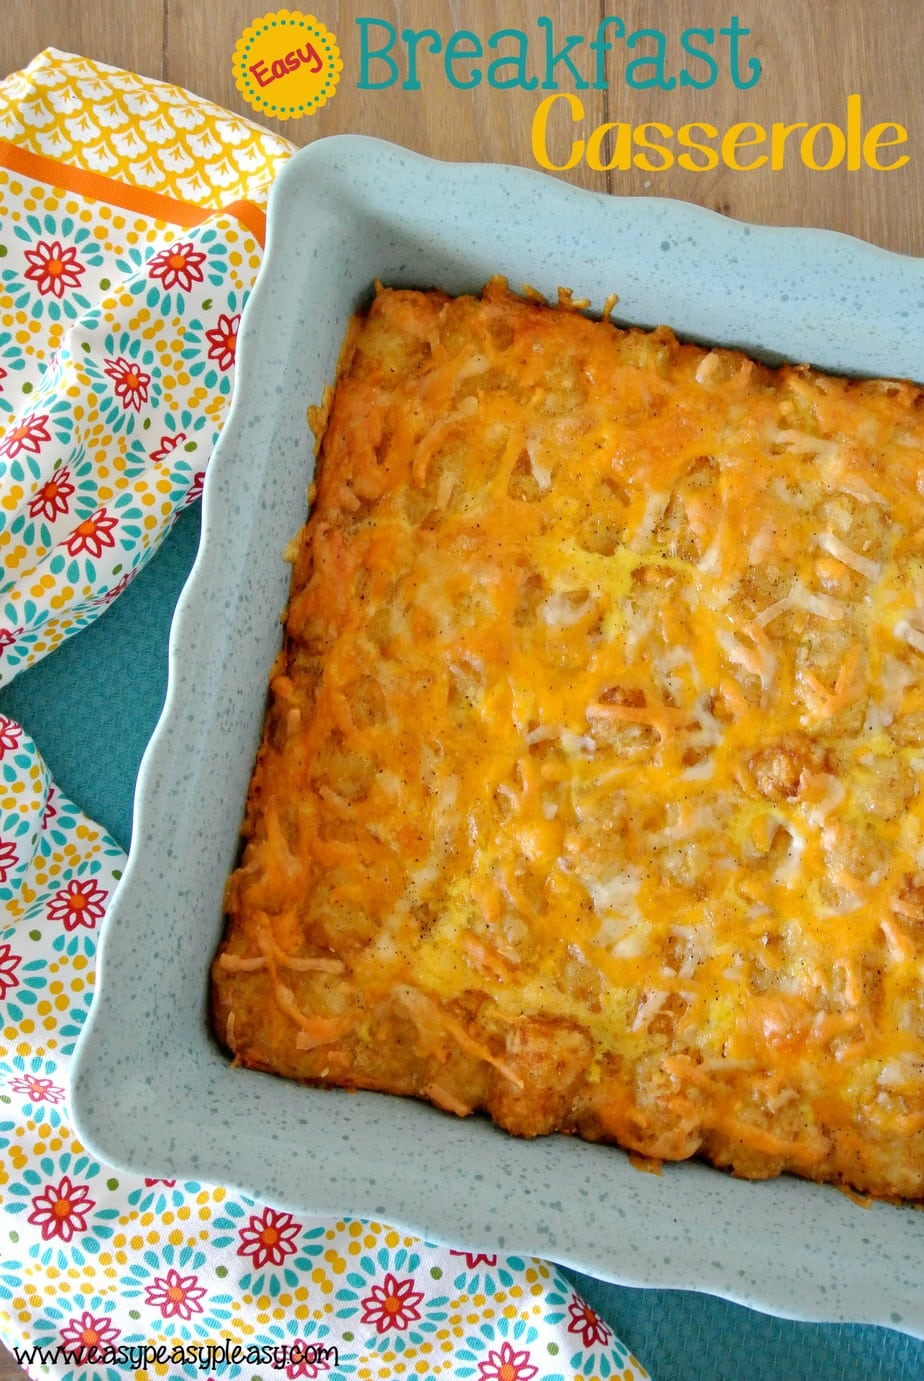 Easy Overnight Breakfast Casserole will make waking up a cinch and everyone will love you cause it's so delicious! Prepare the night before and bake the next morning!